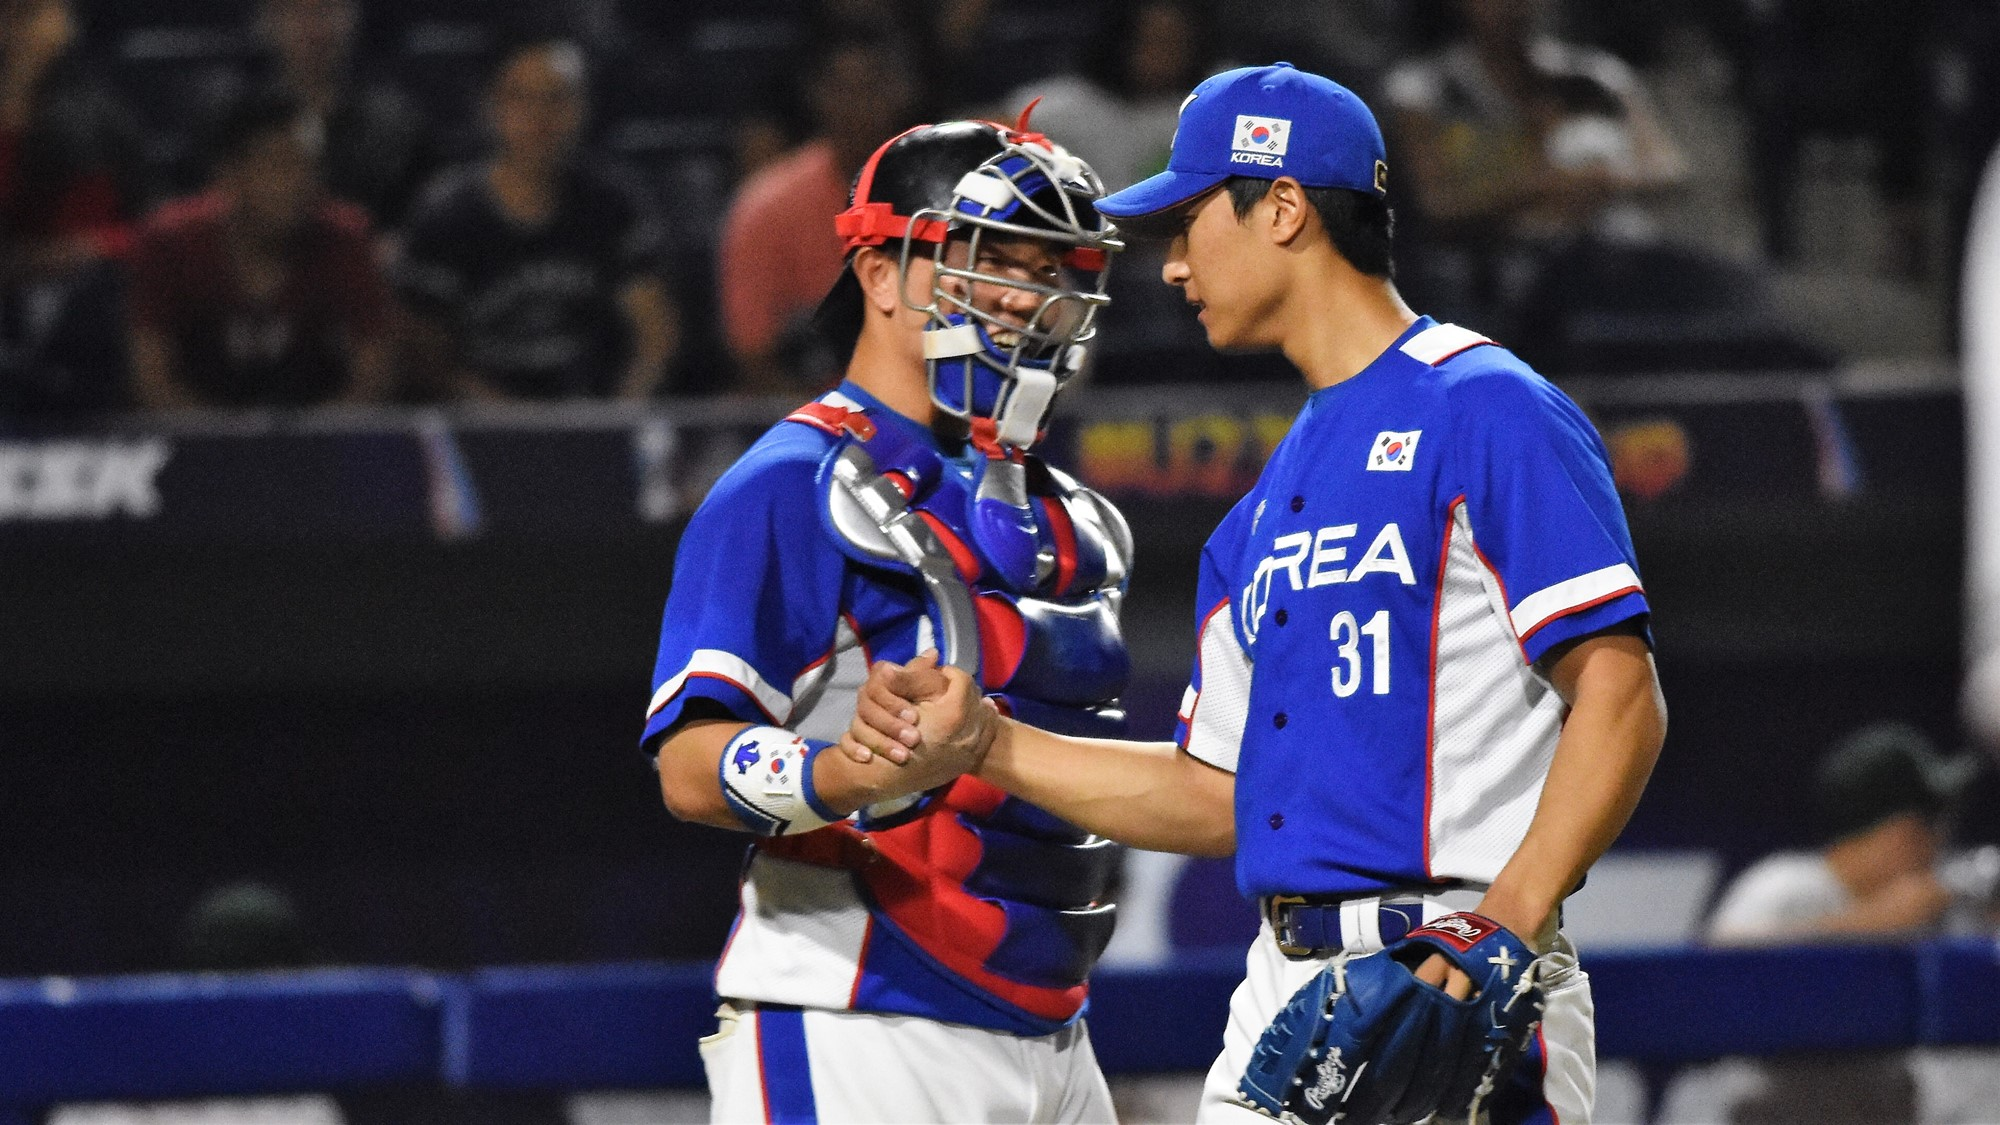 Catcher Park Yu Yeon congratulates reliever Ji Yung Yong at the end of the game